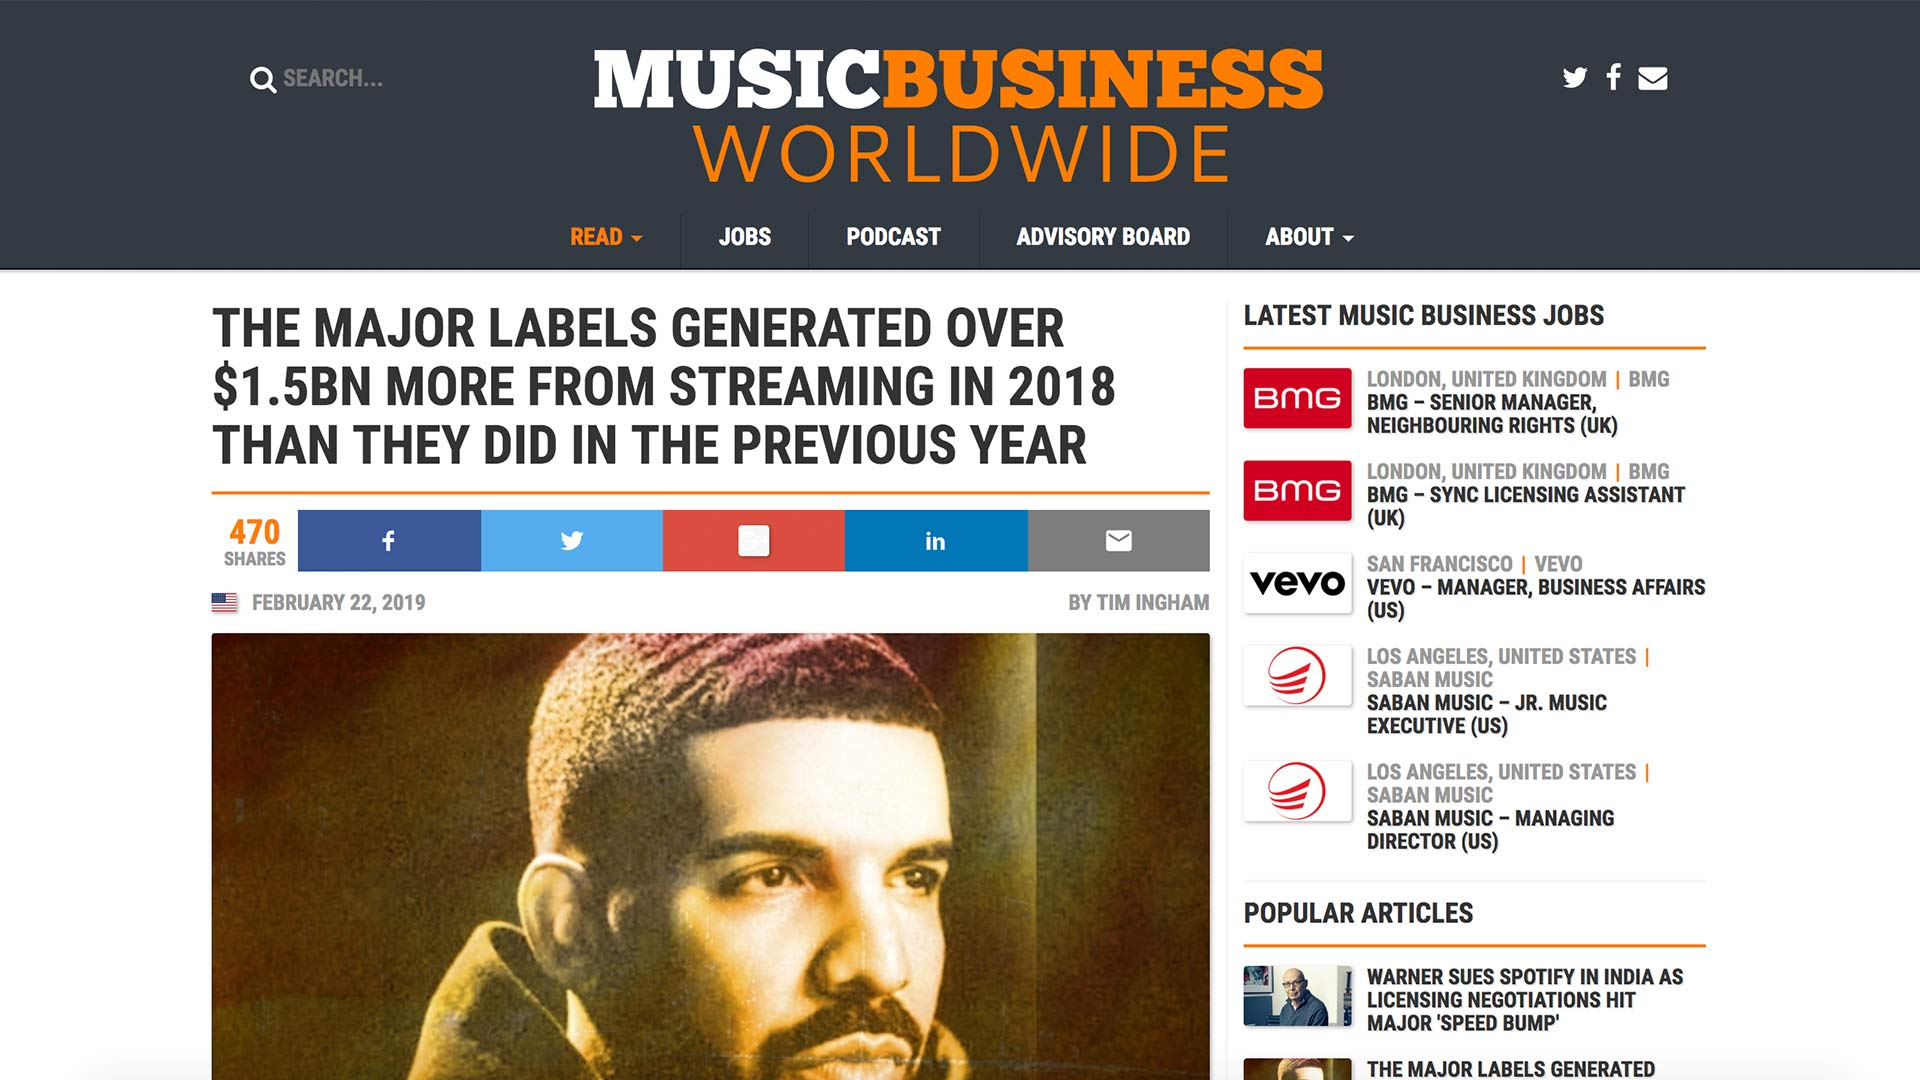 Fairness Rocks News THE MAJOR LABELS GENERATED OVER $1.5BN MORE FROM STREAMING IN 2018 THAN THEY DID IN THE PREVIOUS YEAR